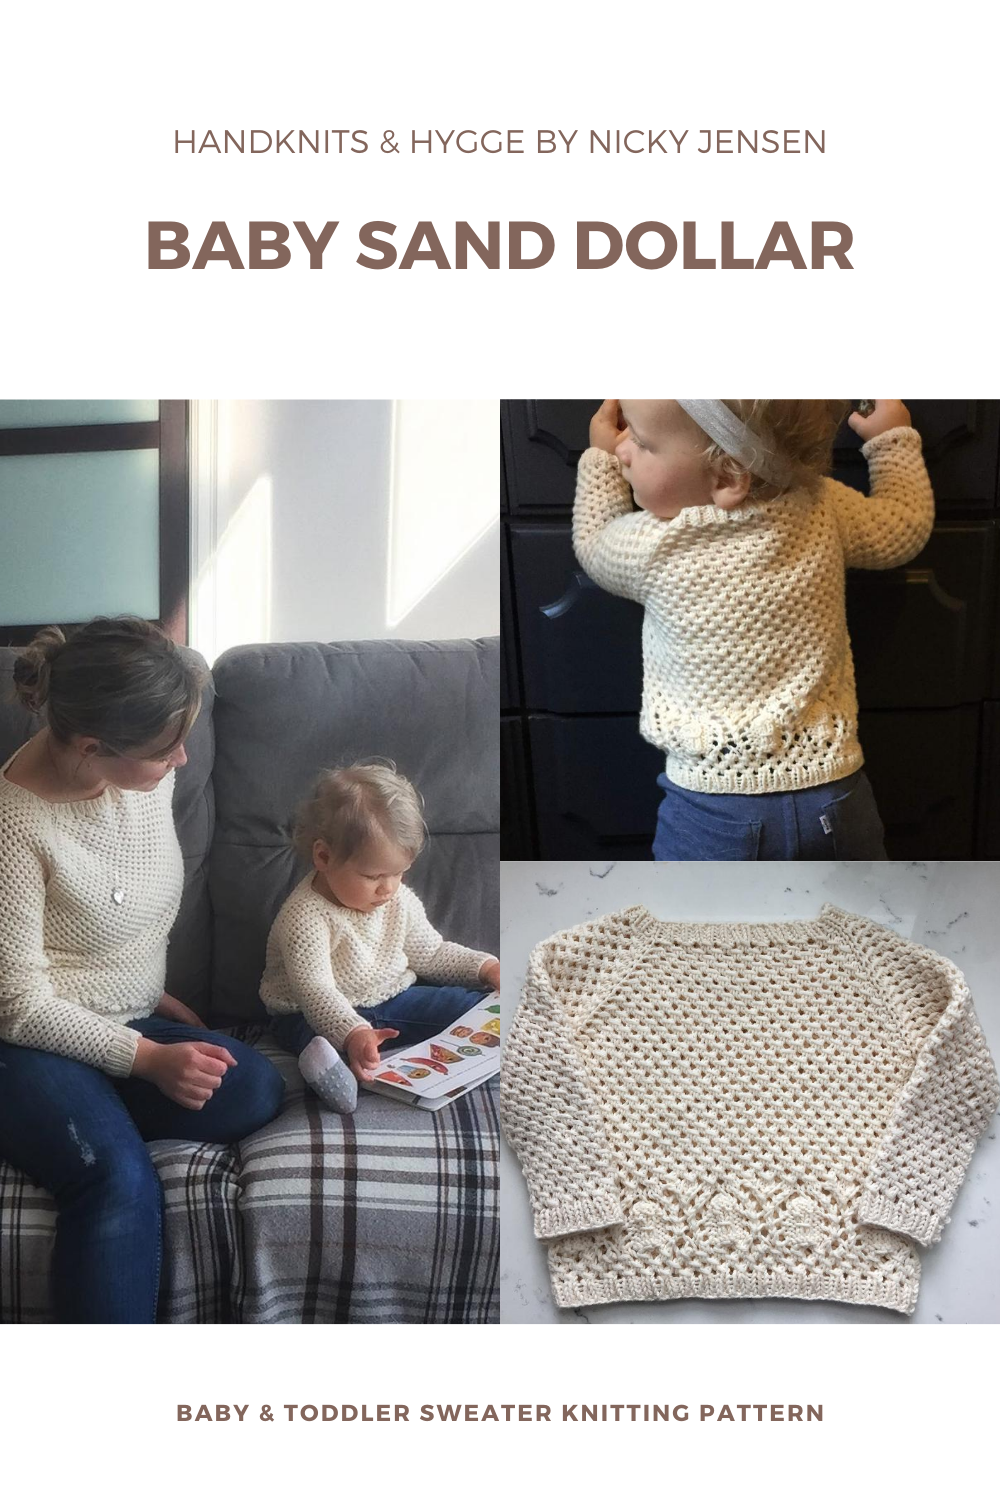 A blonde toddler models a cream mesh pullover with sand dollar lace motif across the hips